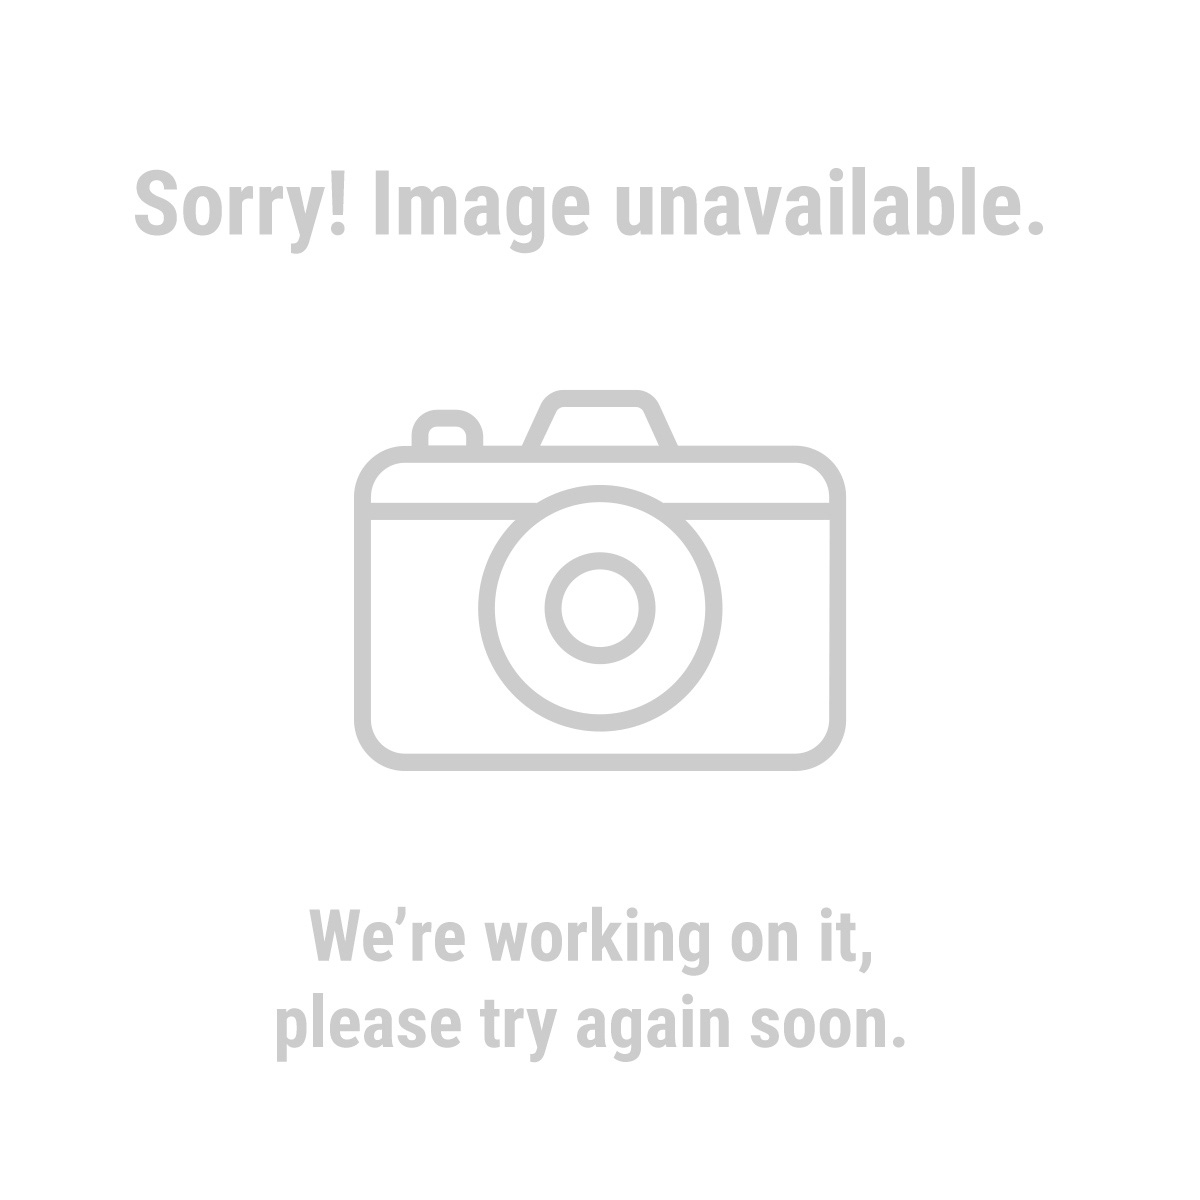 Central Machinery 30324 1 Ton 16 ft. Extra Long Lift Chain Hoist